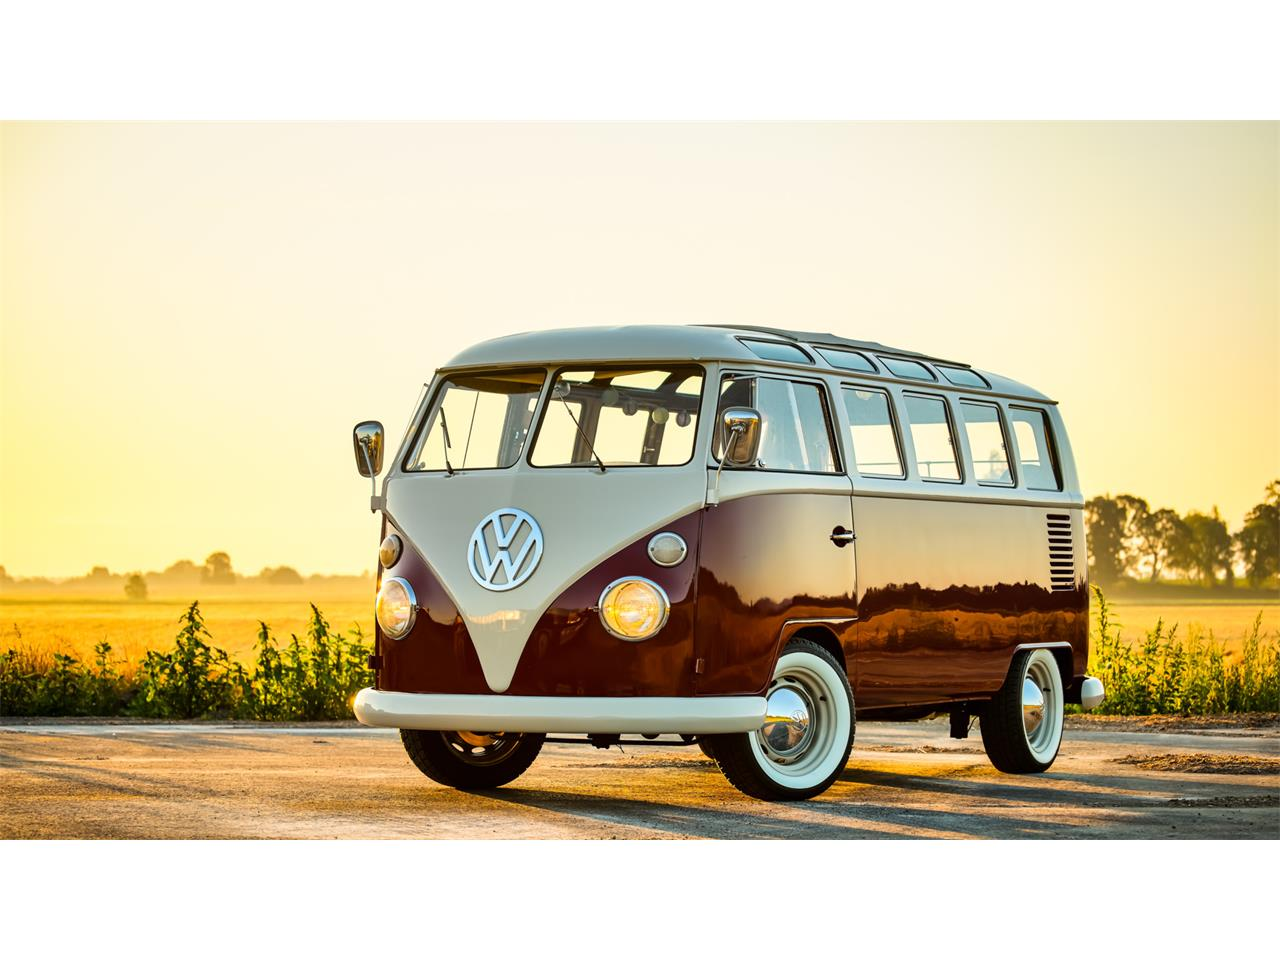 Large Picture of 1966 Volkswagen Bus Auction Vehicle Offered by Bring A Trailer - QP3E